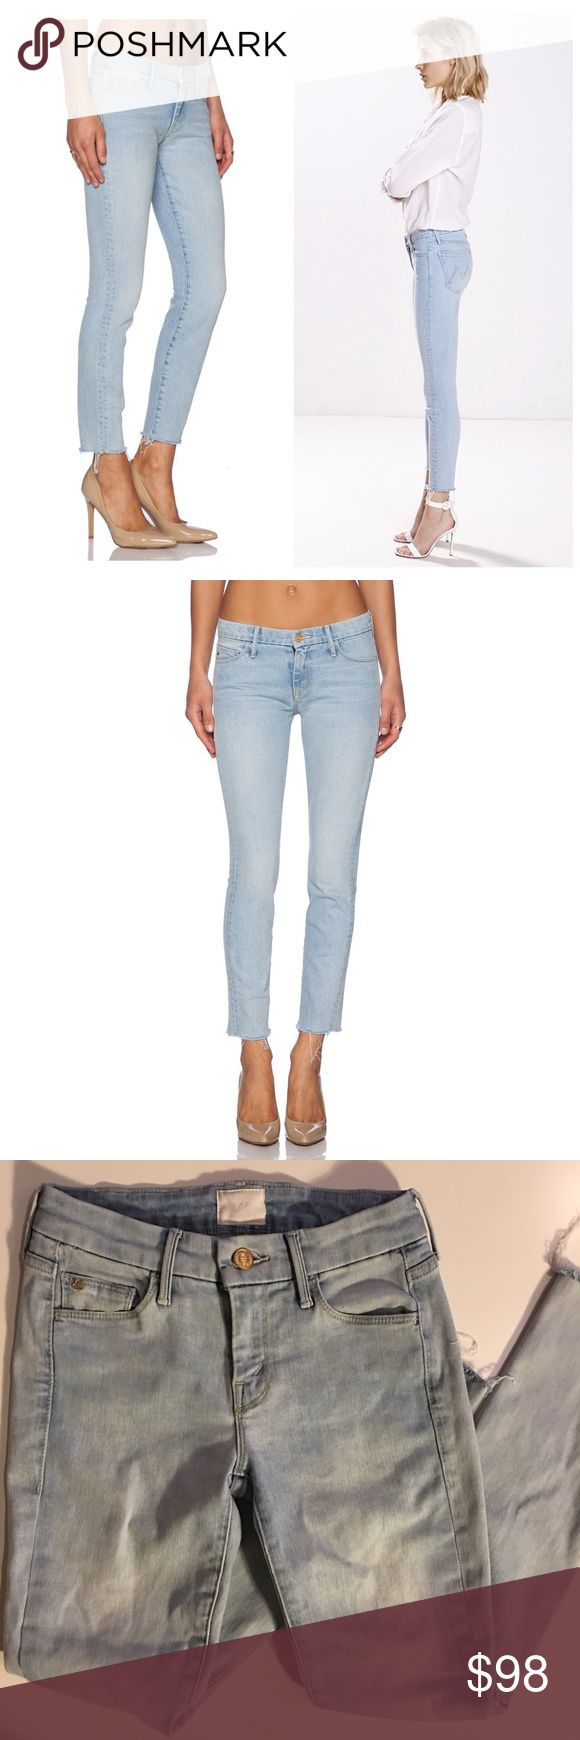 Mother Candice Swanepoe Looker Ankle Fray Jeans 24 Worn a couple of times. Washed. Like new. Raw cut Hem. Sold out everywhere. Very stretchy, could fit sizes 25-26 MOTHER Jeans Skinny